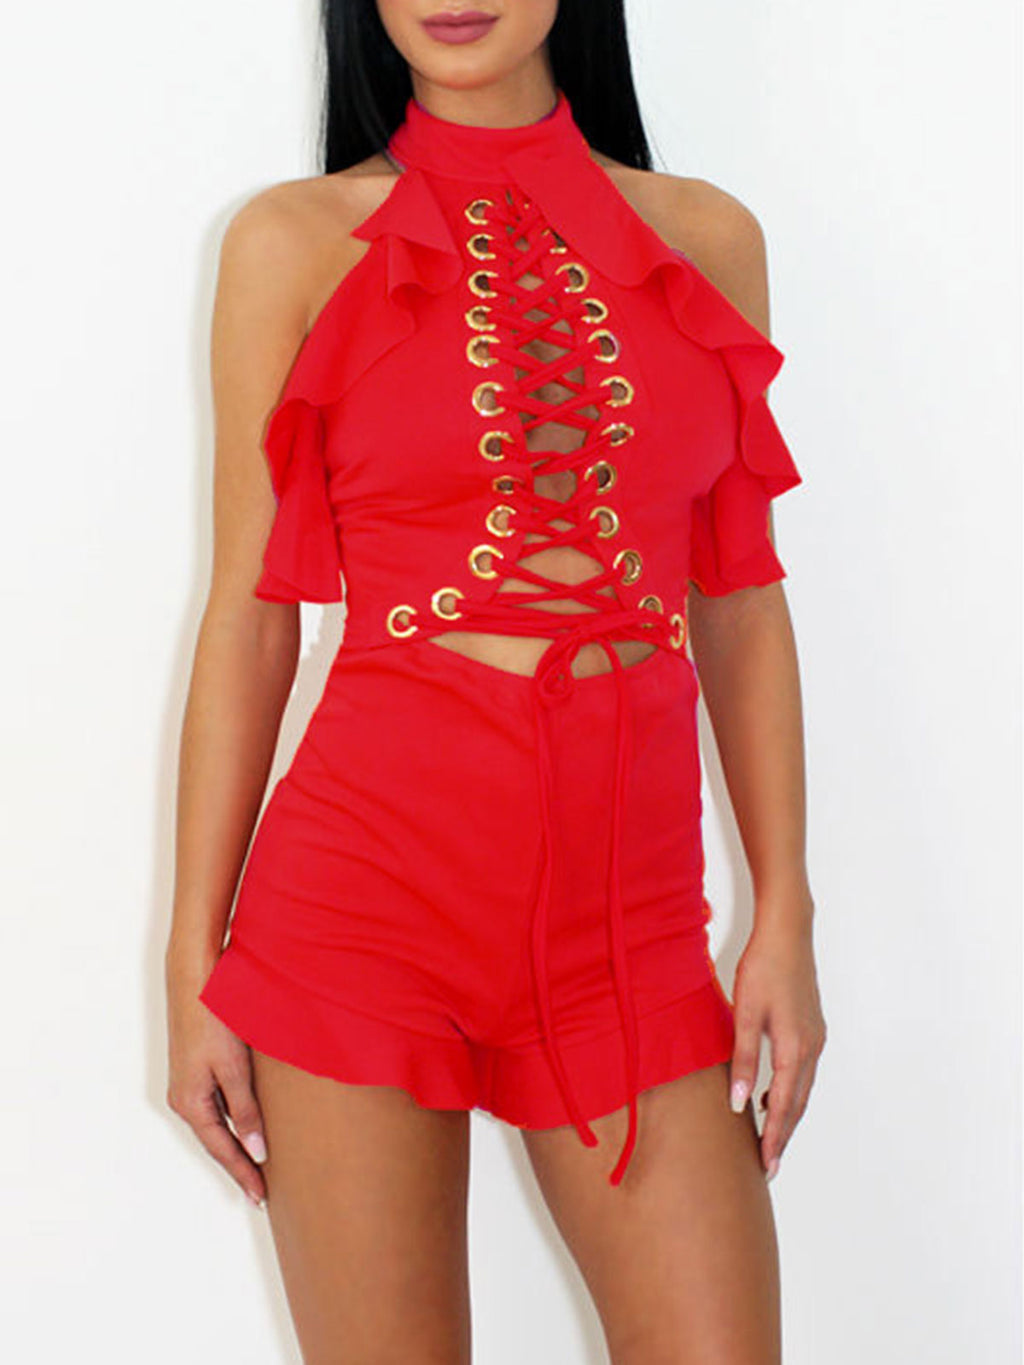 Solid Color Hollow Lace-Up Falbala Halter Backless Romper